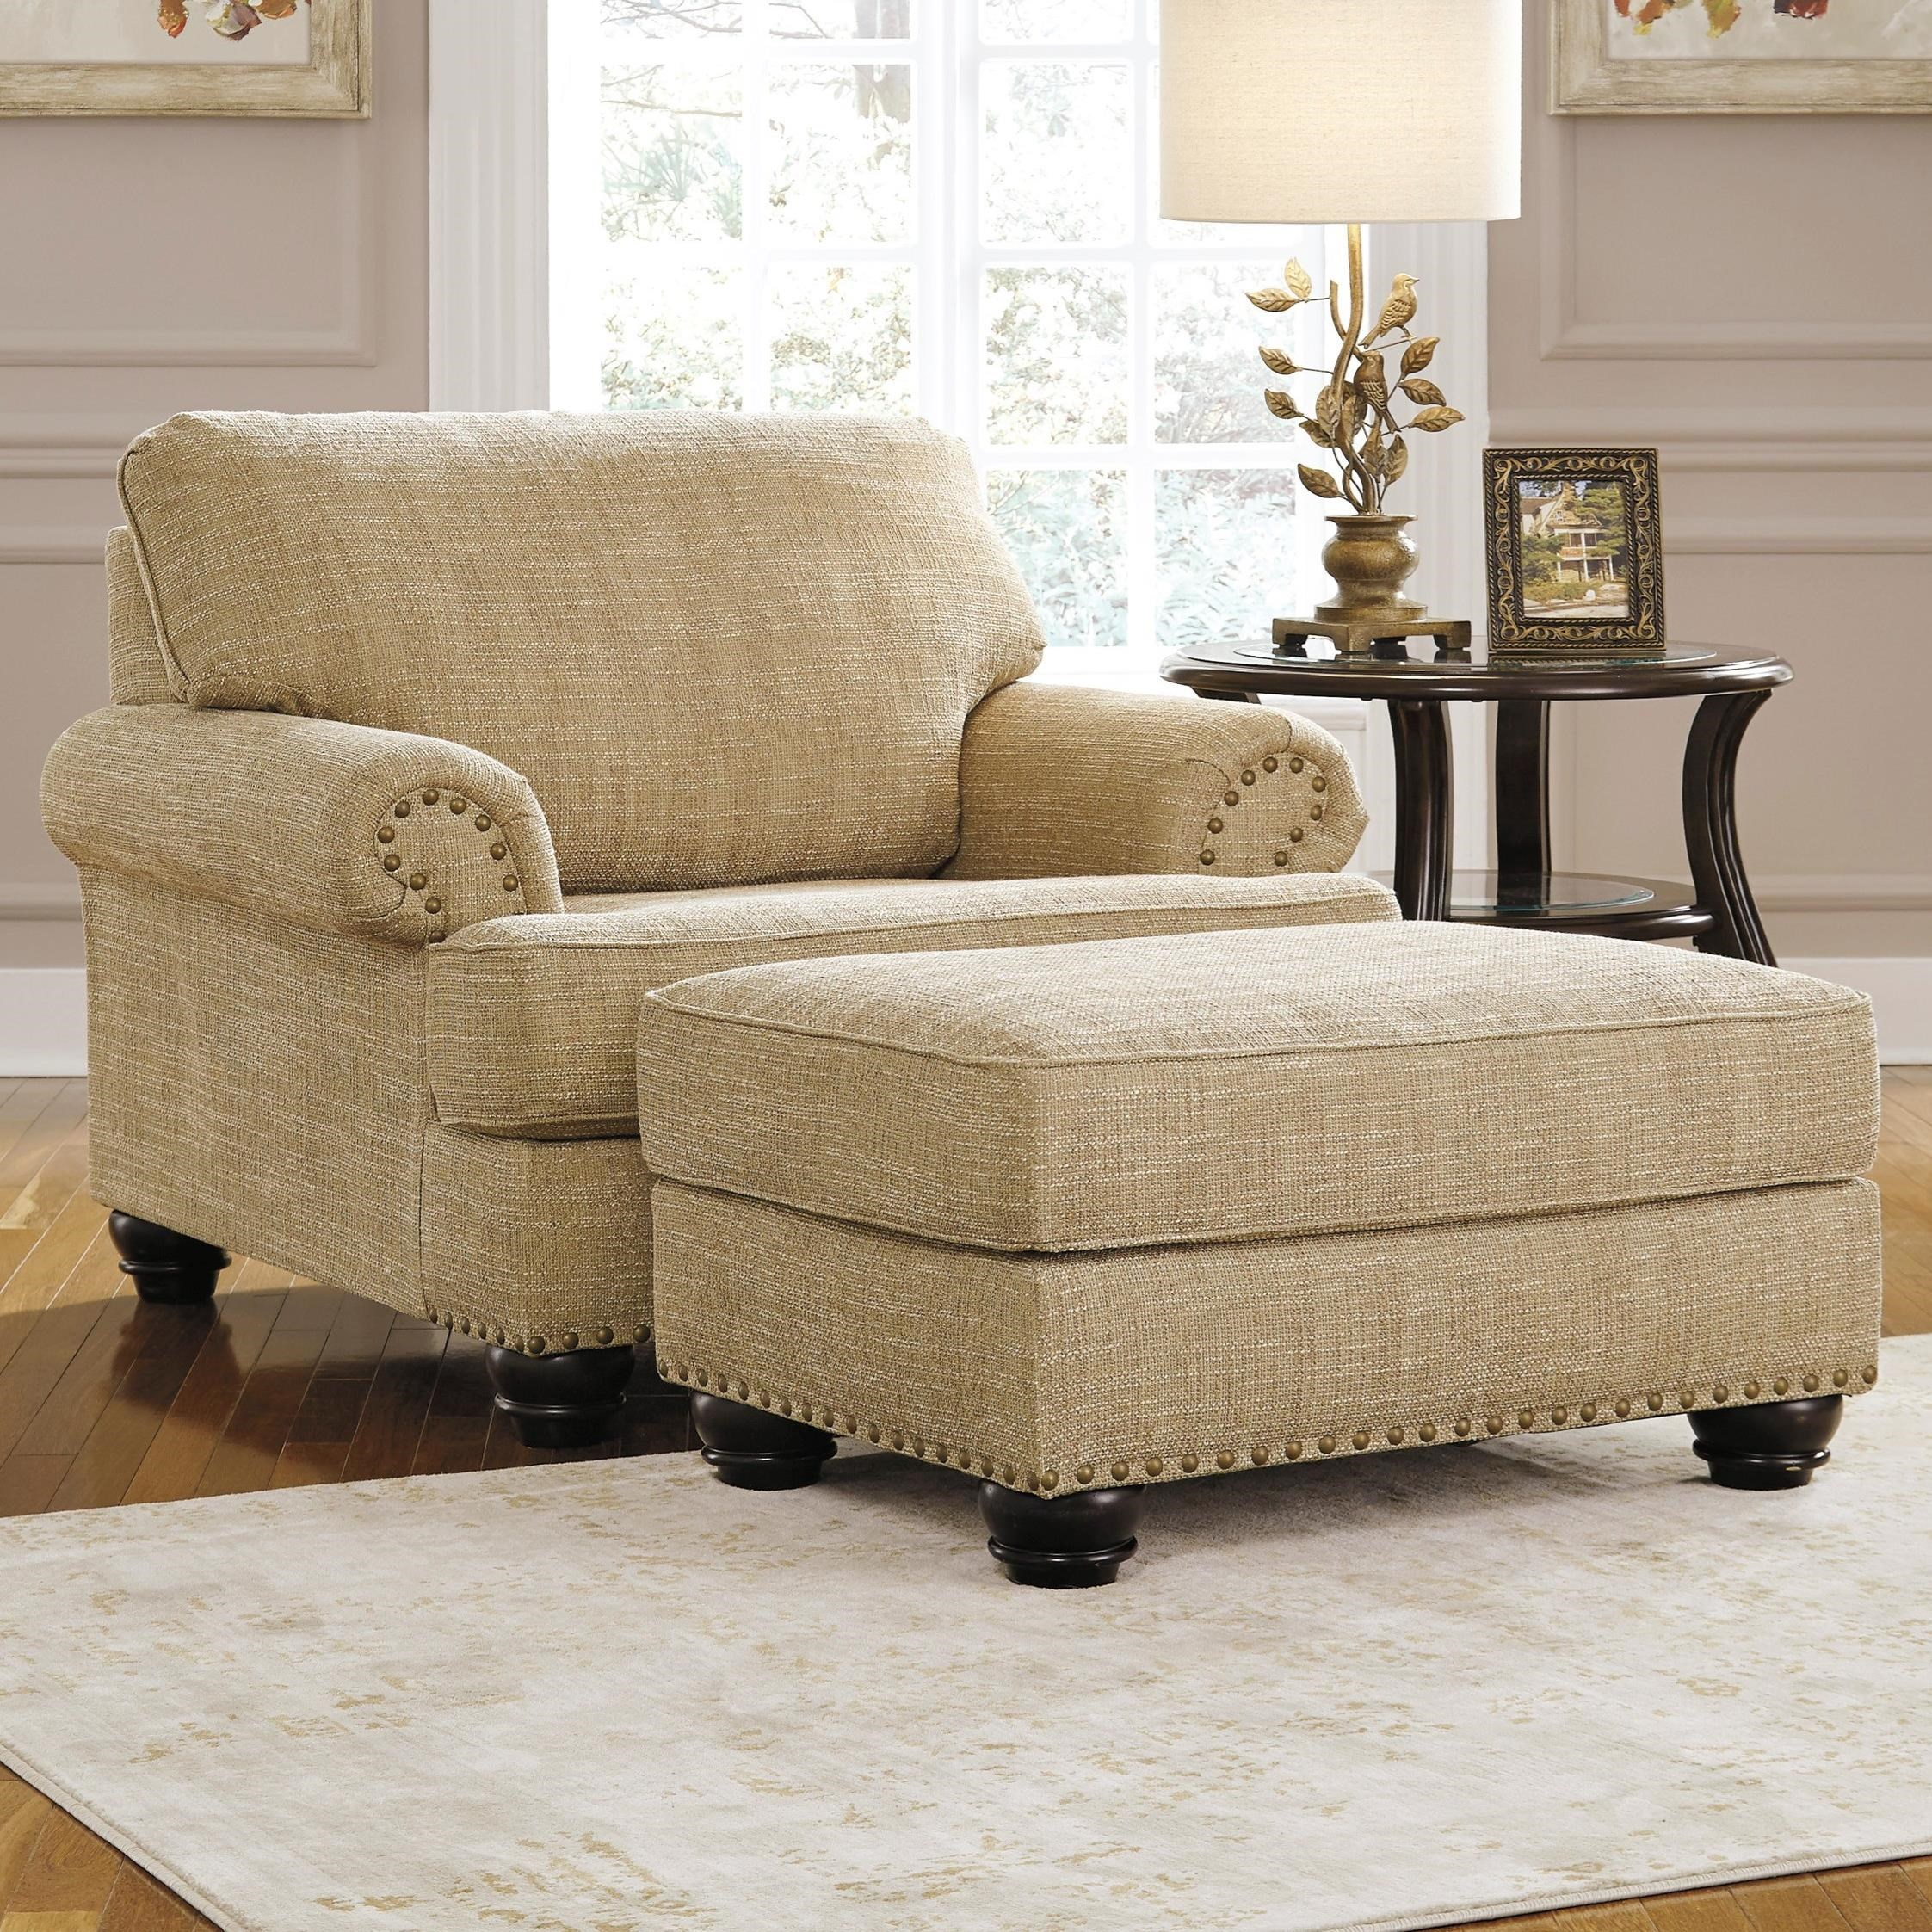 ashley furniture 14 piece living room sale red leather couch ideas candoro chair and a half & ottoman   becker ...